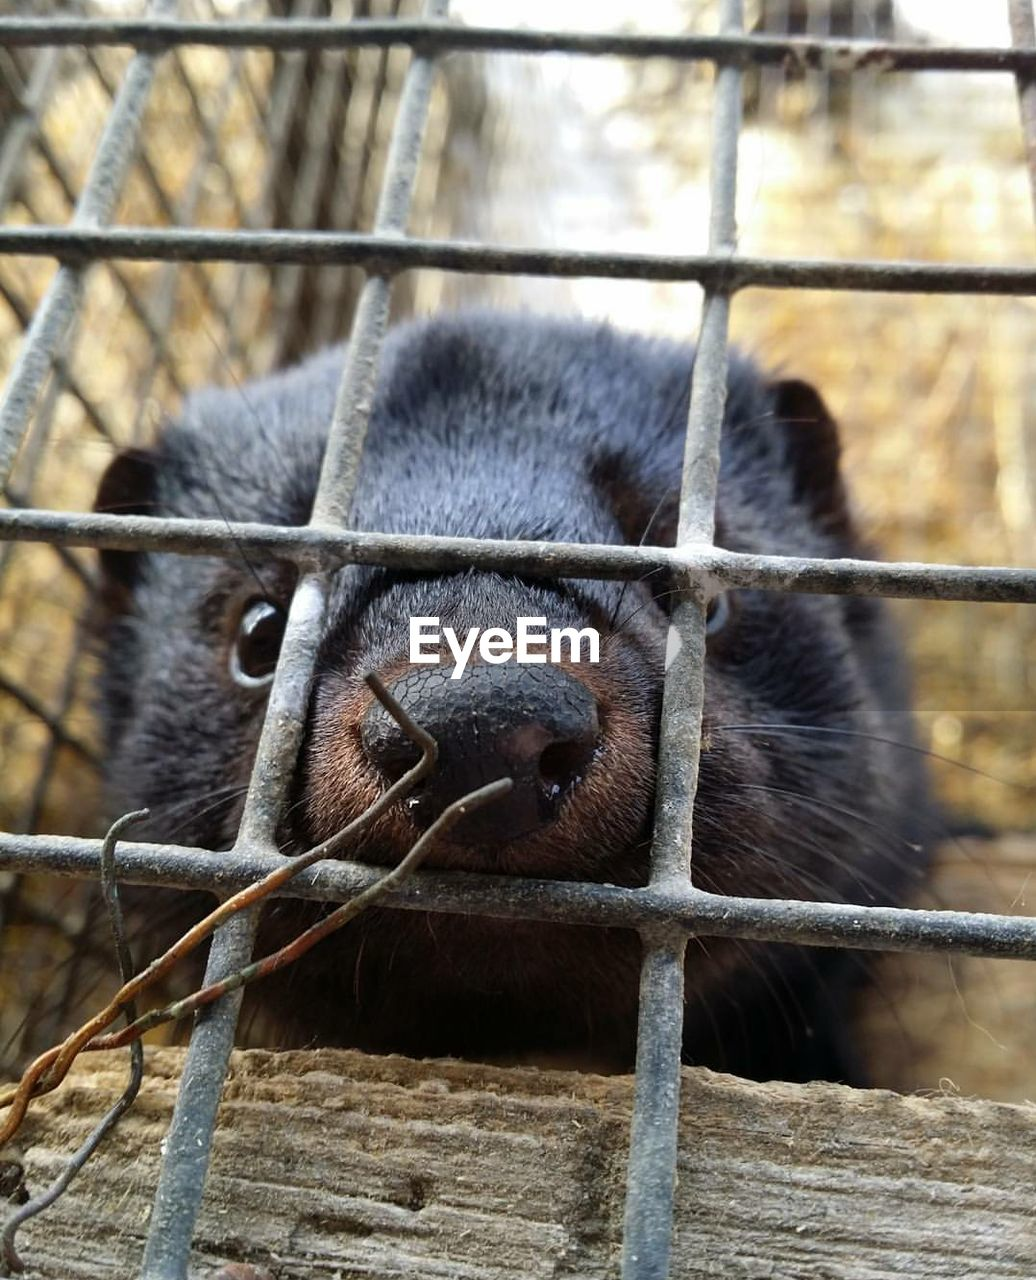 Portrait Of Feret In Cage At Zoo